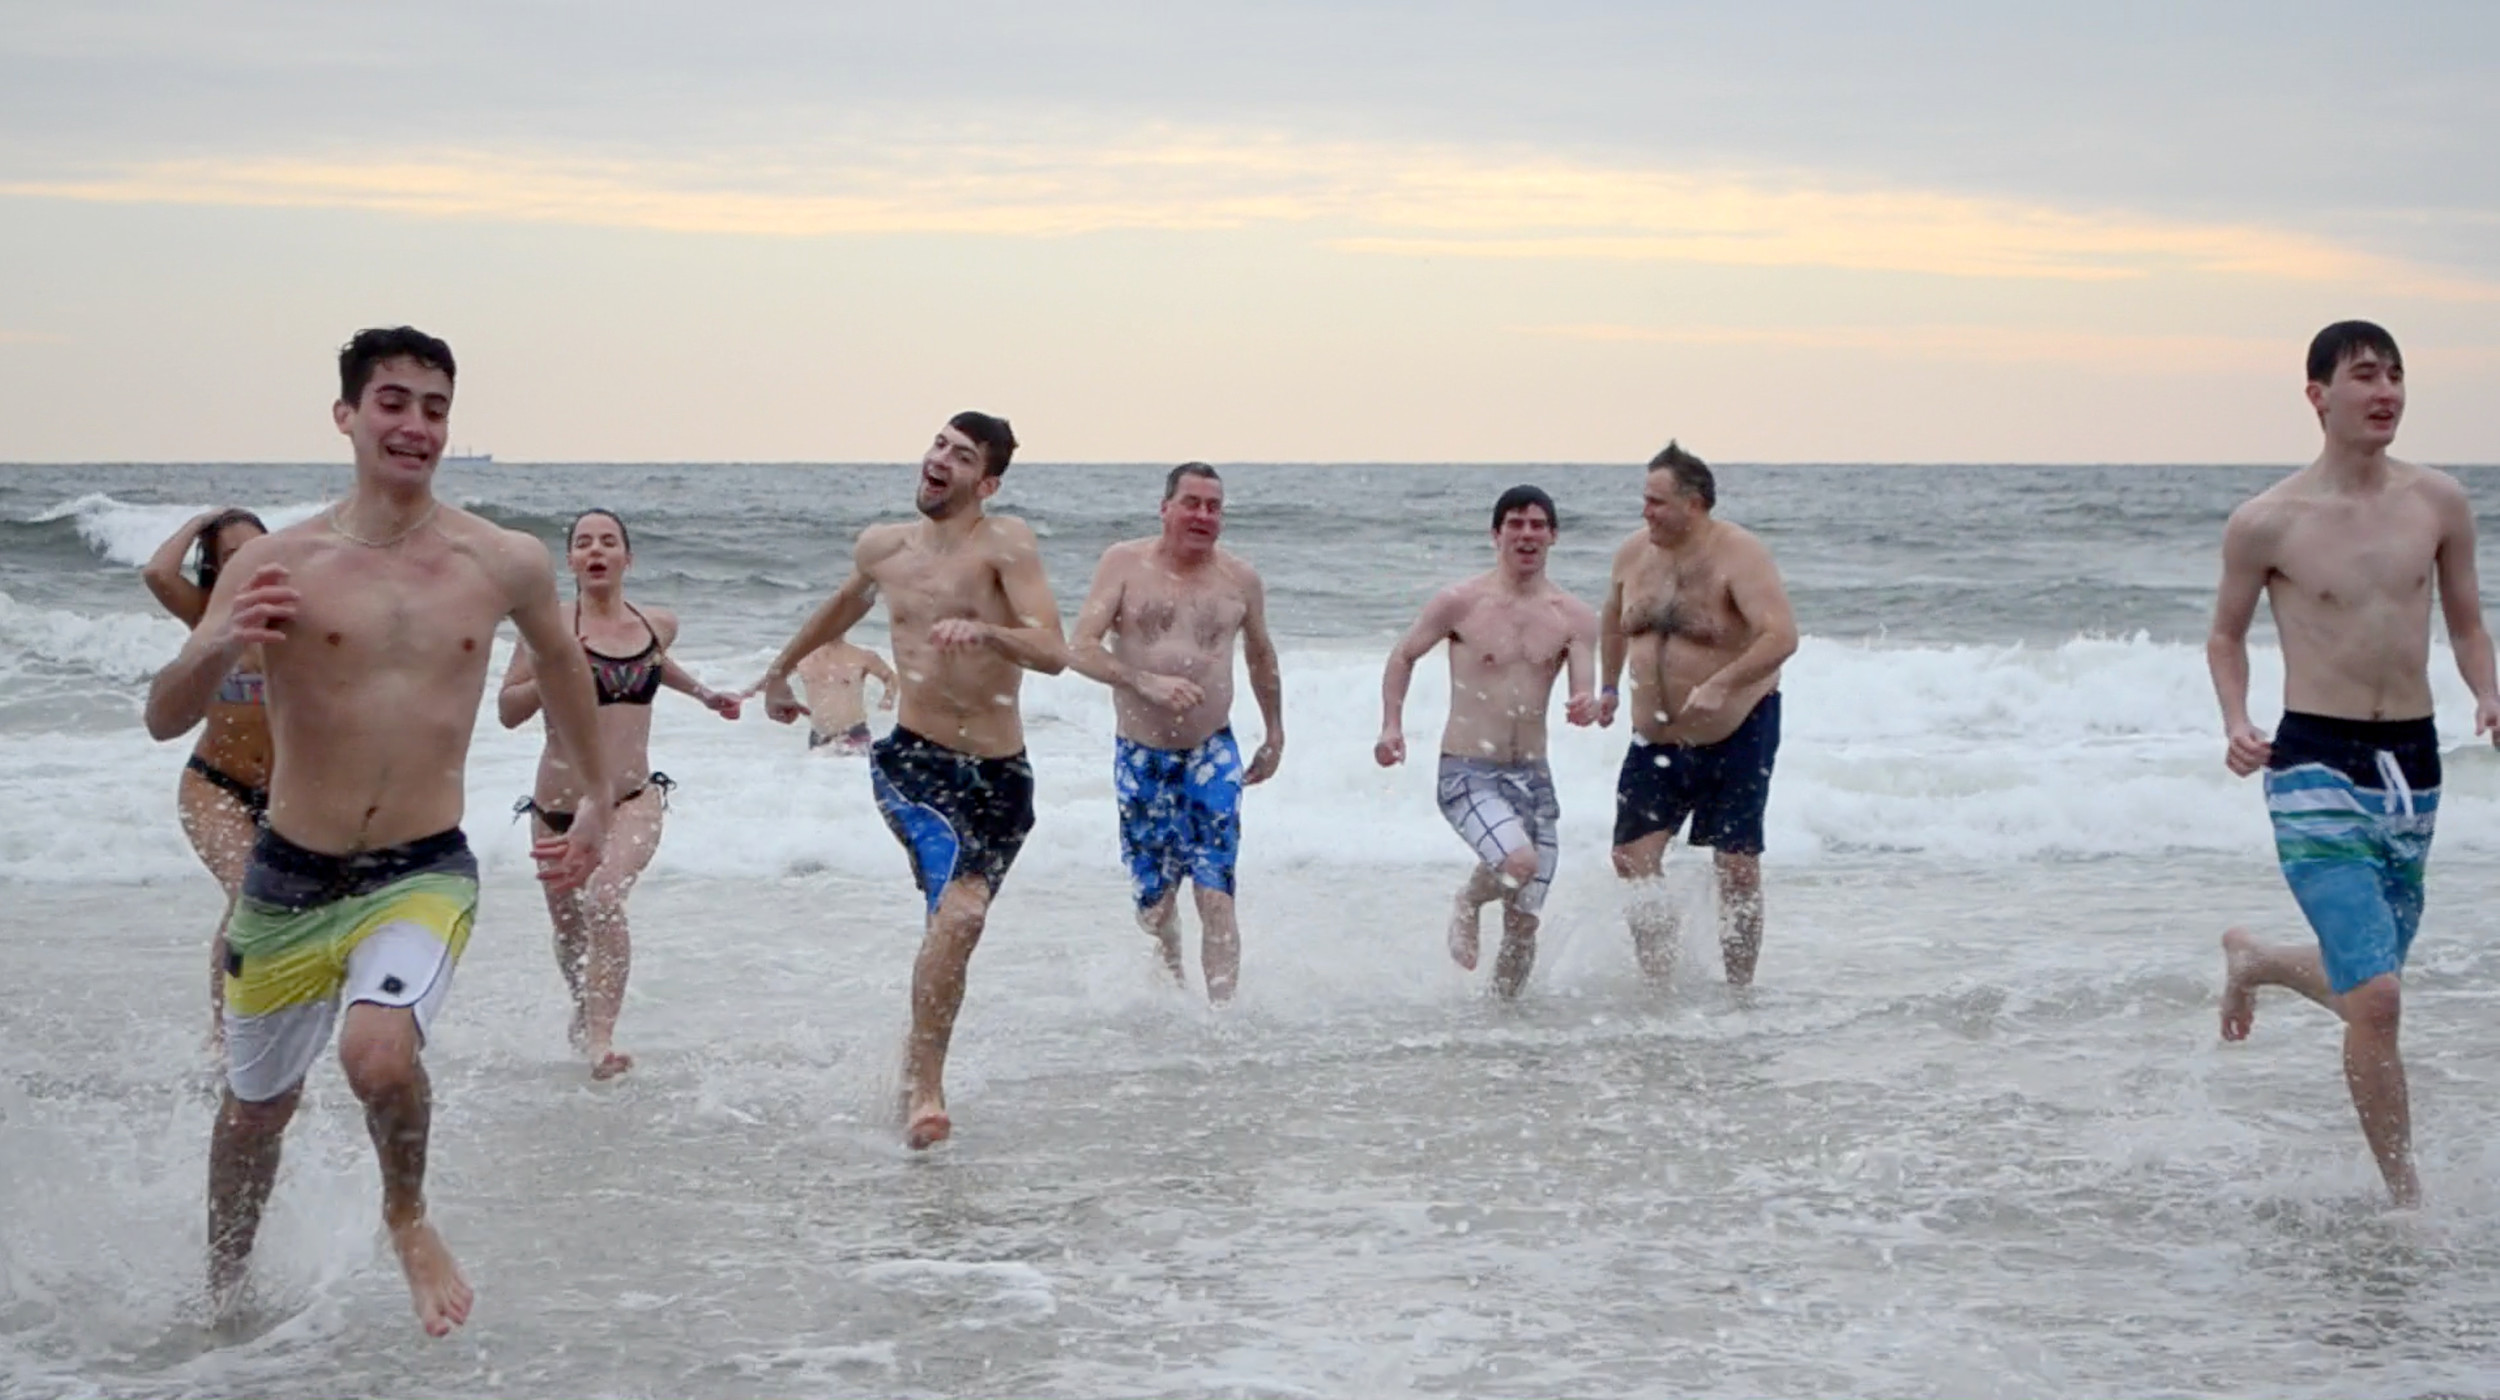 Long Beach residents and visitors alike ran into the icy waters on Feb. 5 to raise money for the Make-A-Wish foundation.